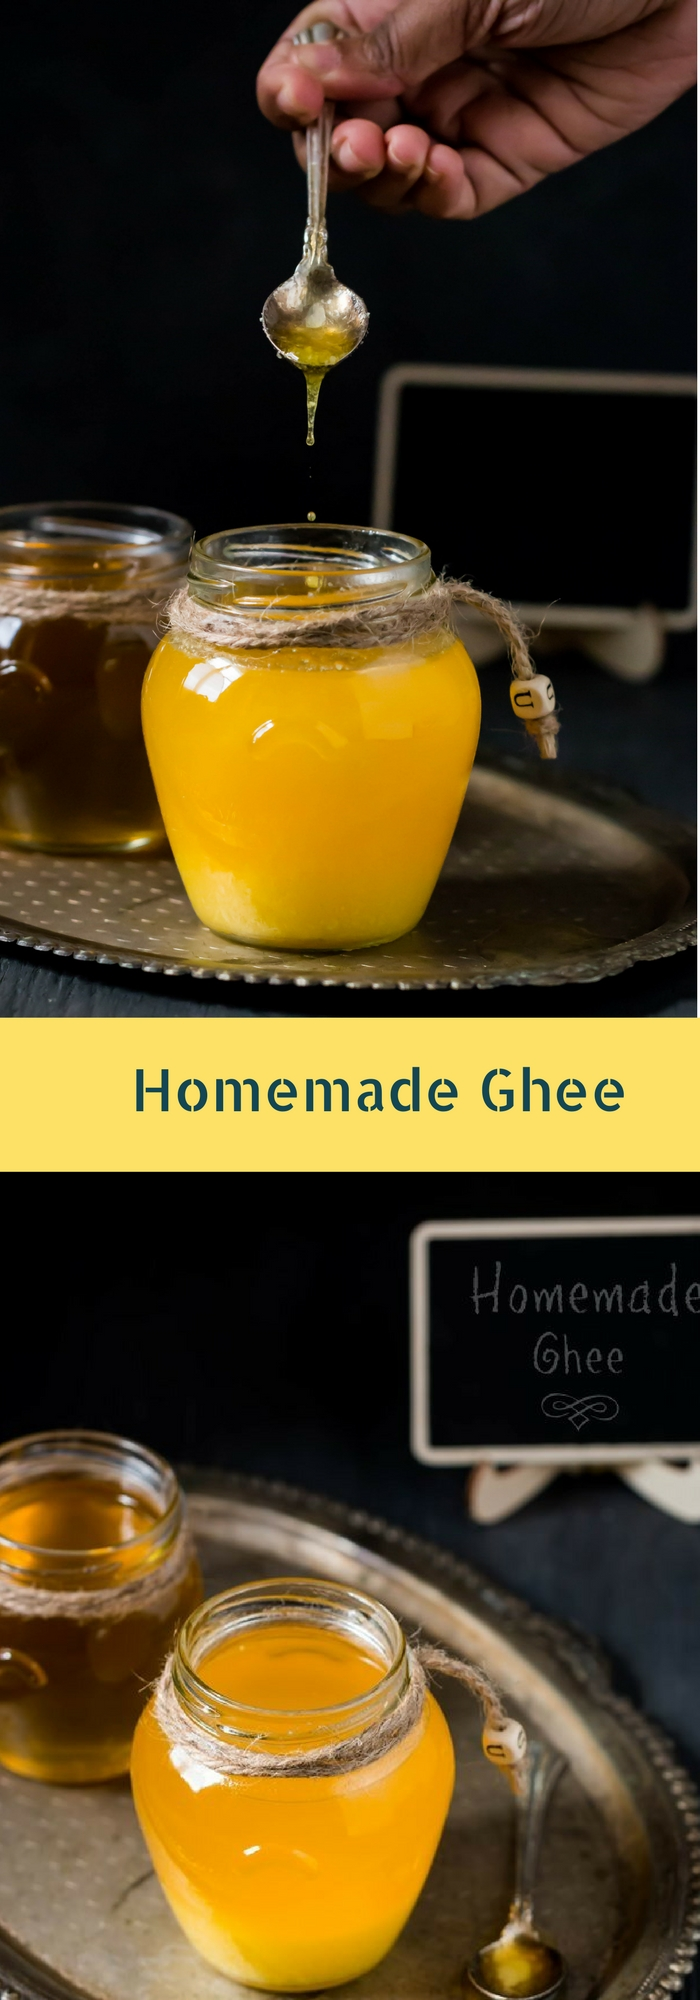 homemade ghee dripping into bottle with text overlay